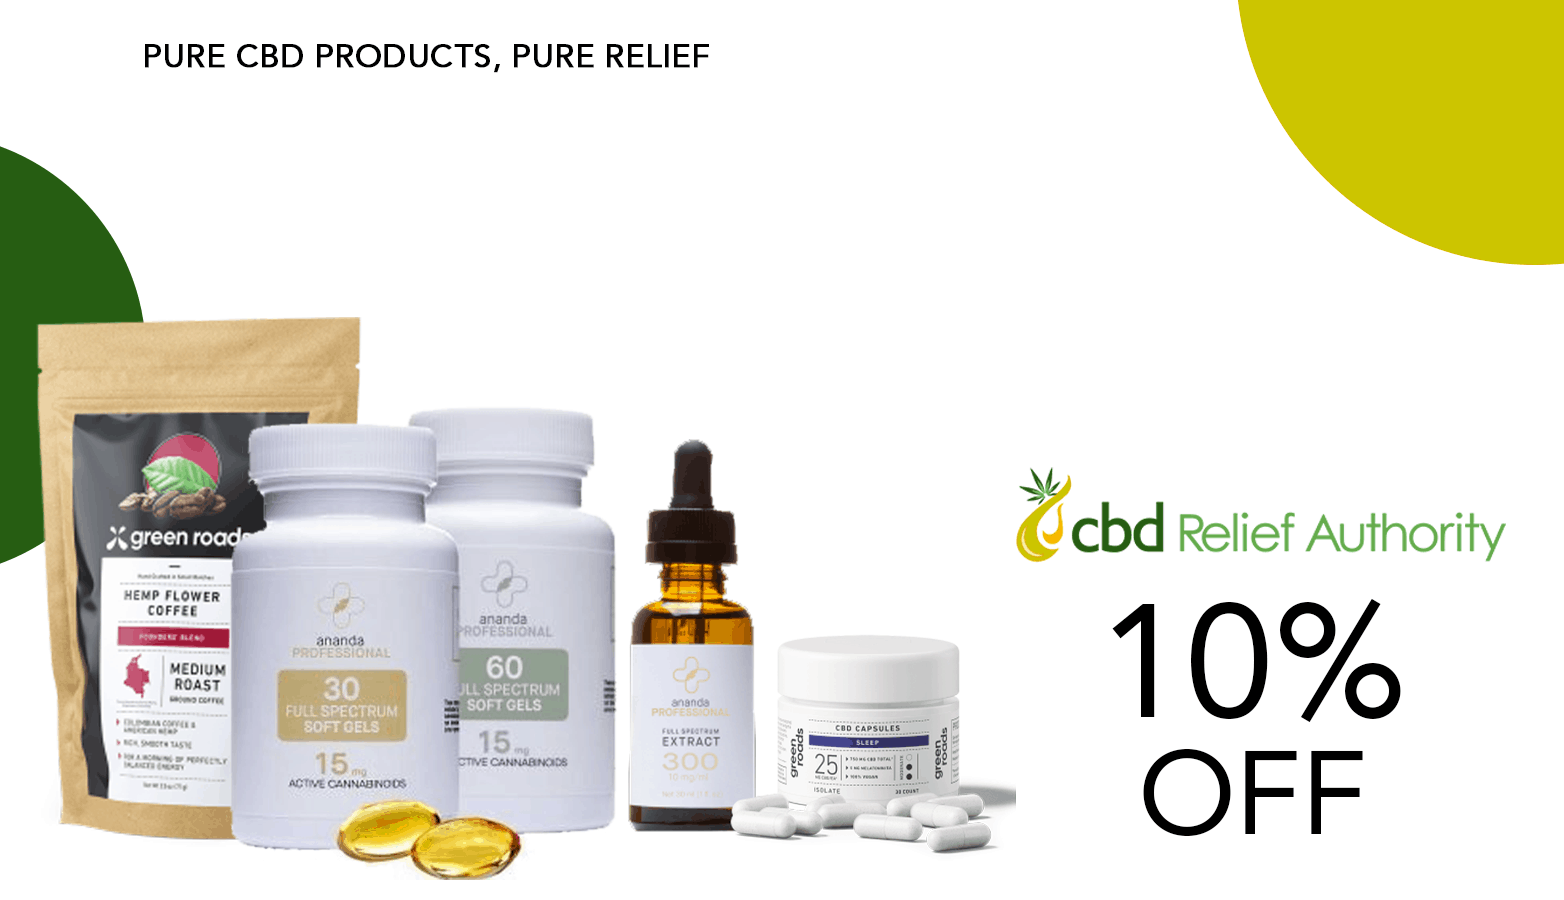 CBD Relief Authority Coupon Code Offer Website